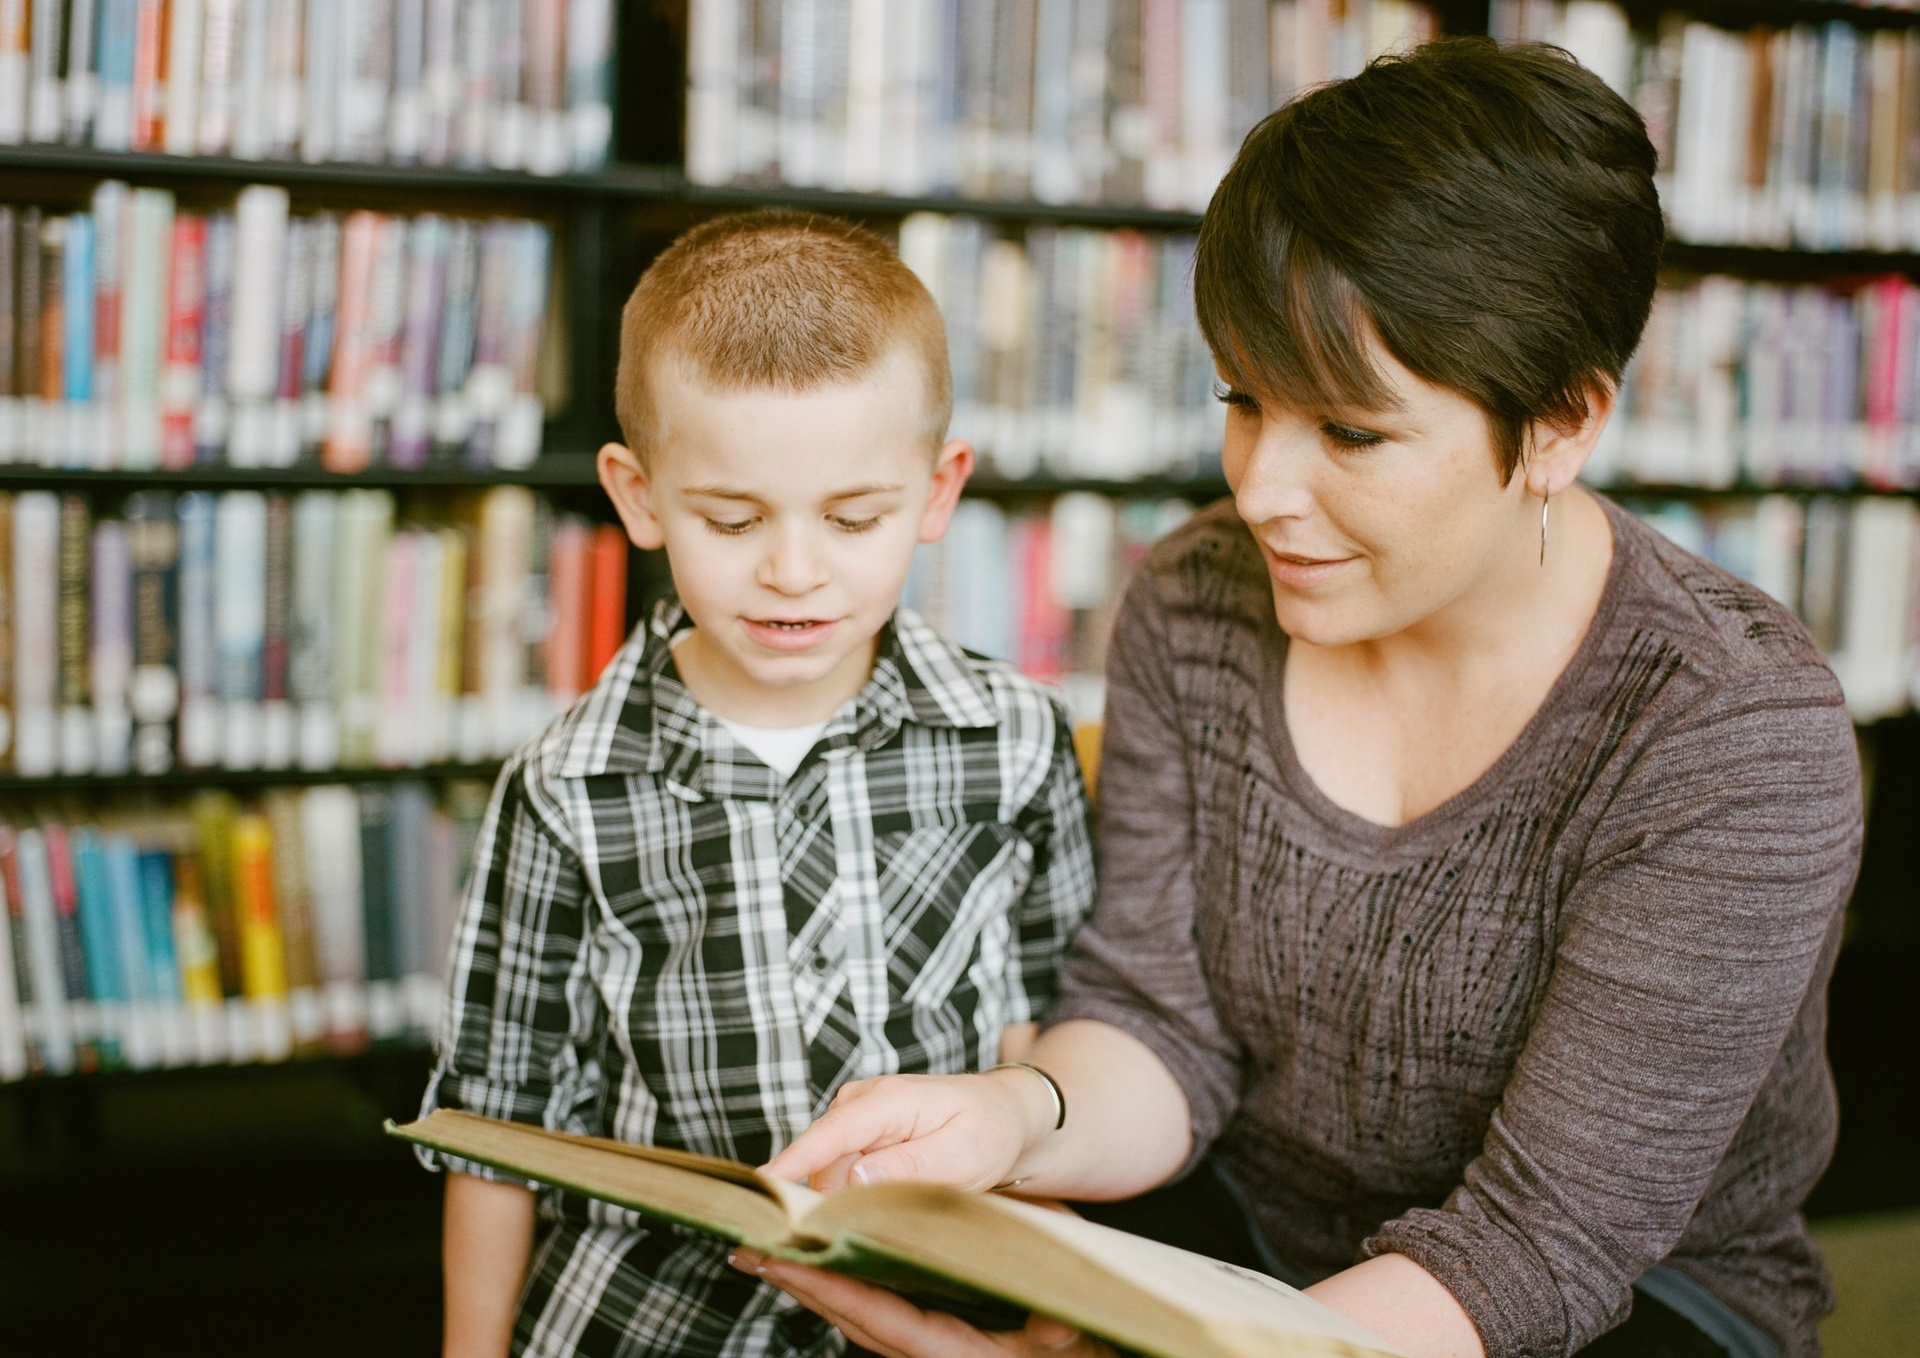 Children and adult reading